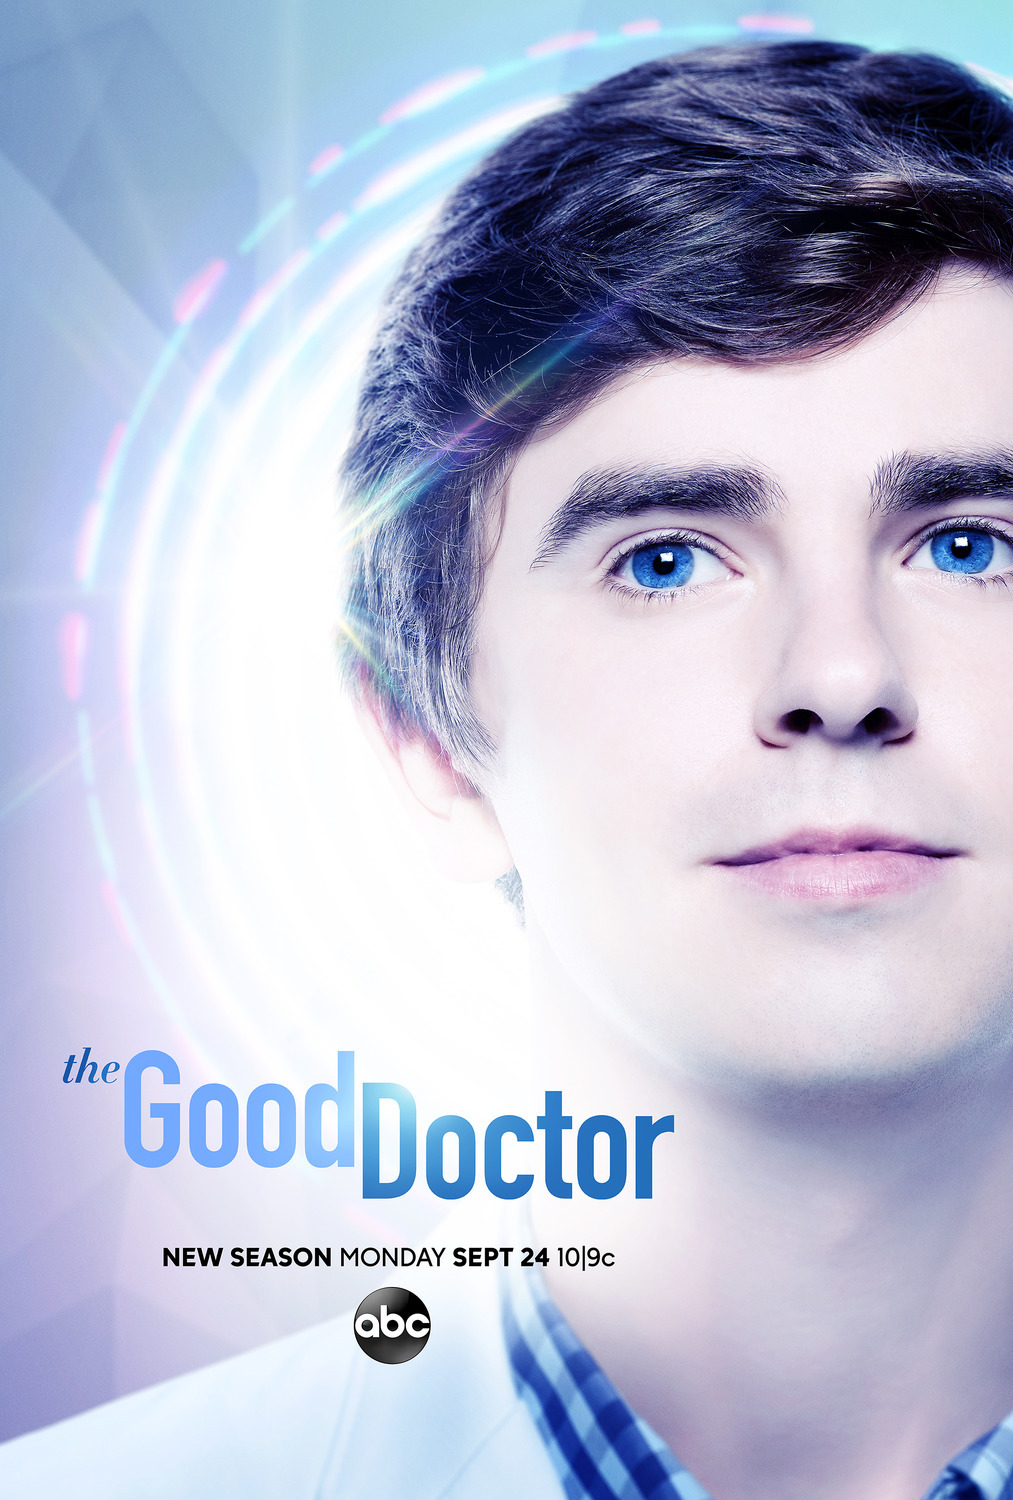 The Good Doctor Season 3 WEBRip 480p, 720p & 1080p